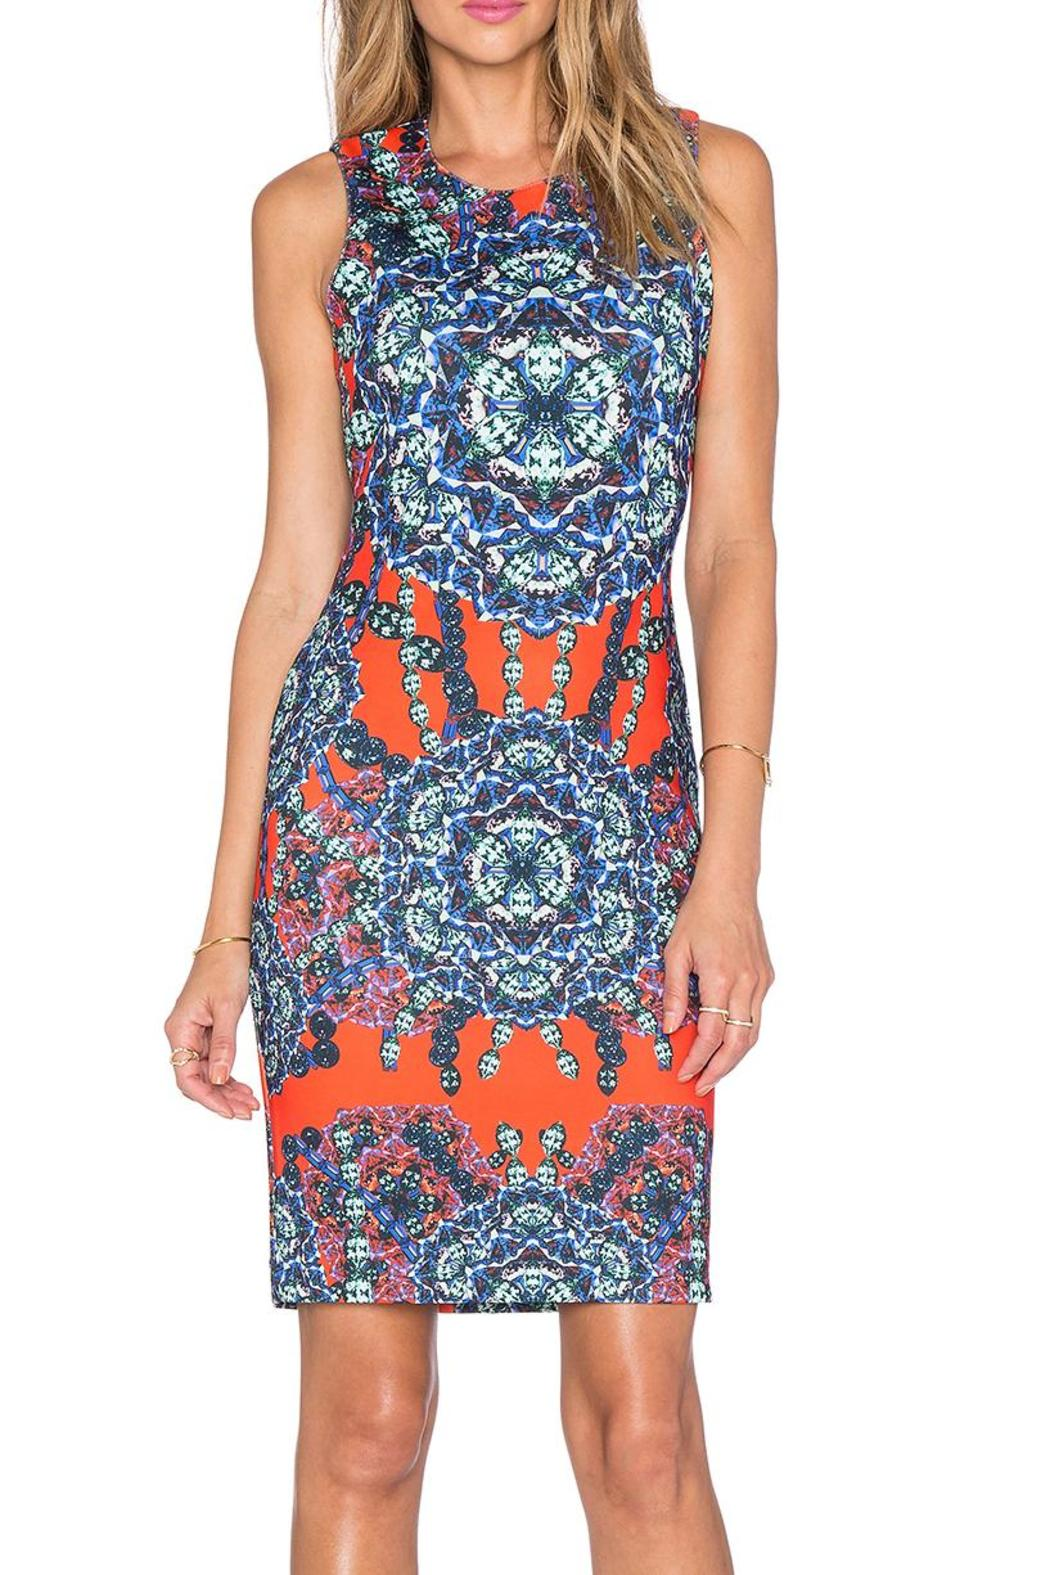 b21909dad8 Hunter Bell New York Shannon Dress from Dallas by La Marque — Shoptiques